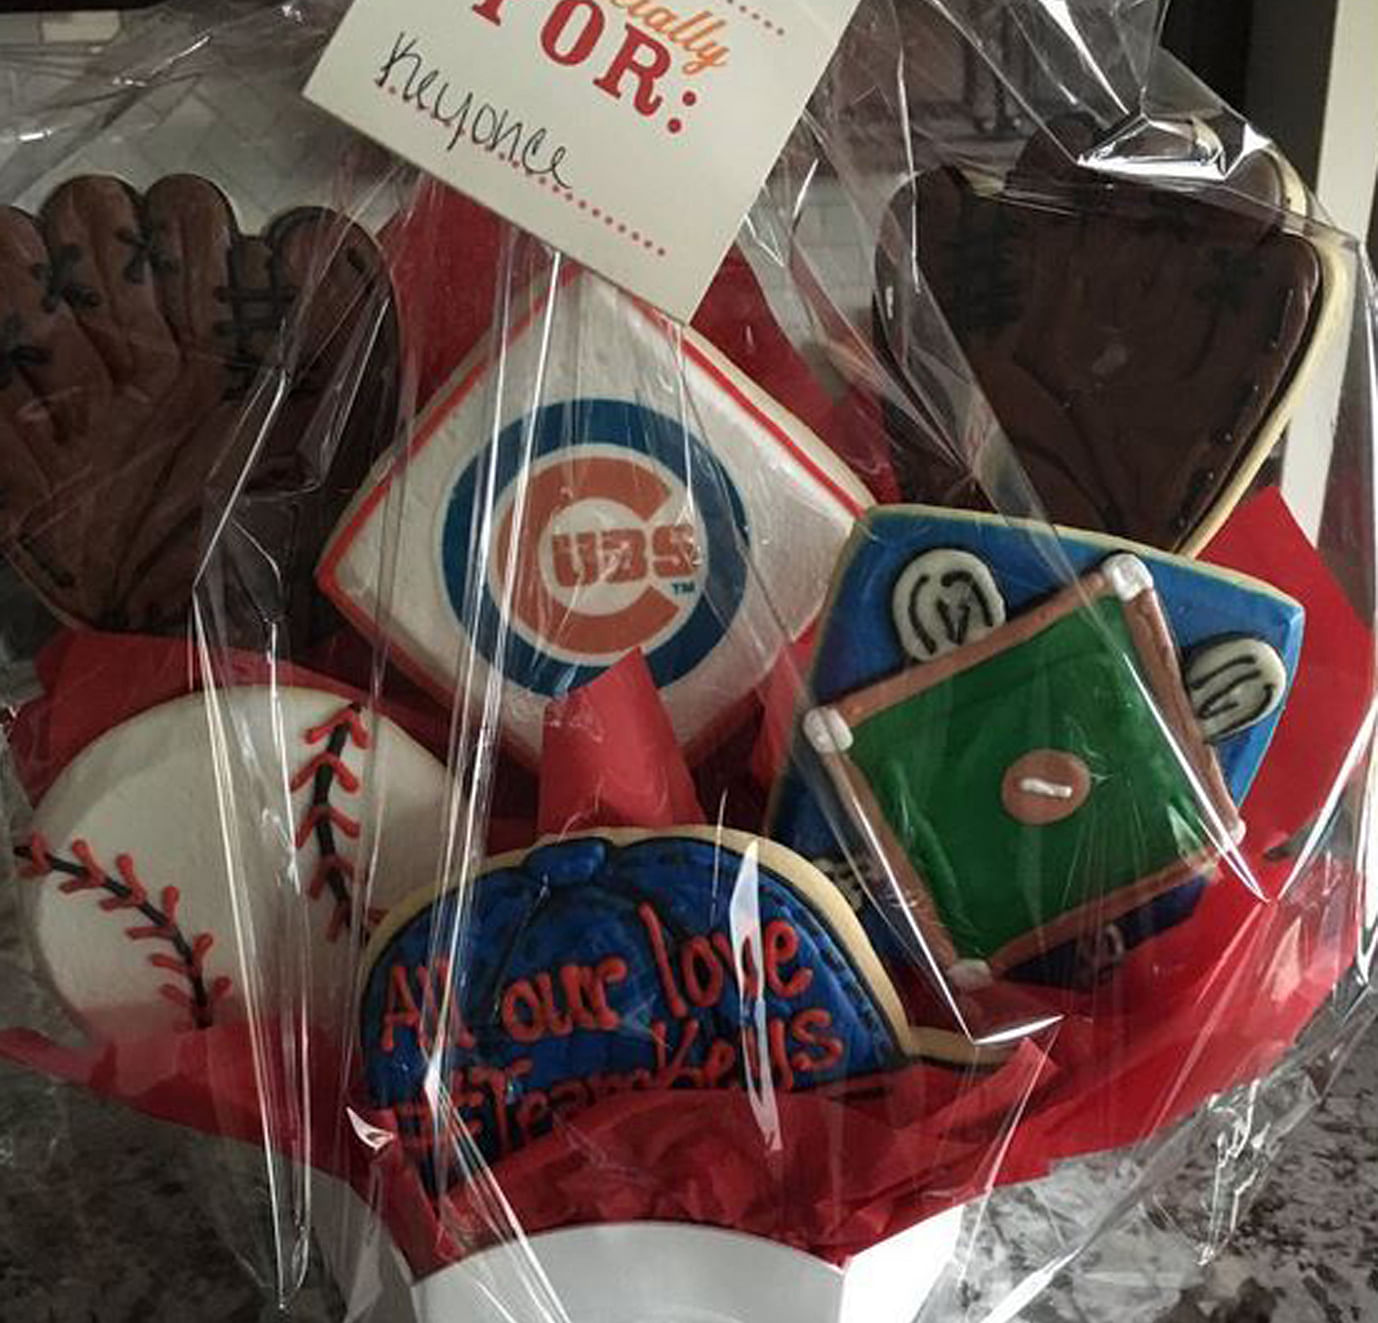 Madison Keys' team made her a hamper's worth of Chicago Cubs titbits. The Illinois native is a fan of the Major League Baseball franchise.